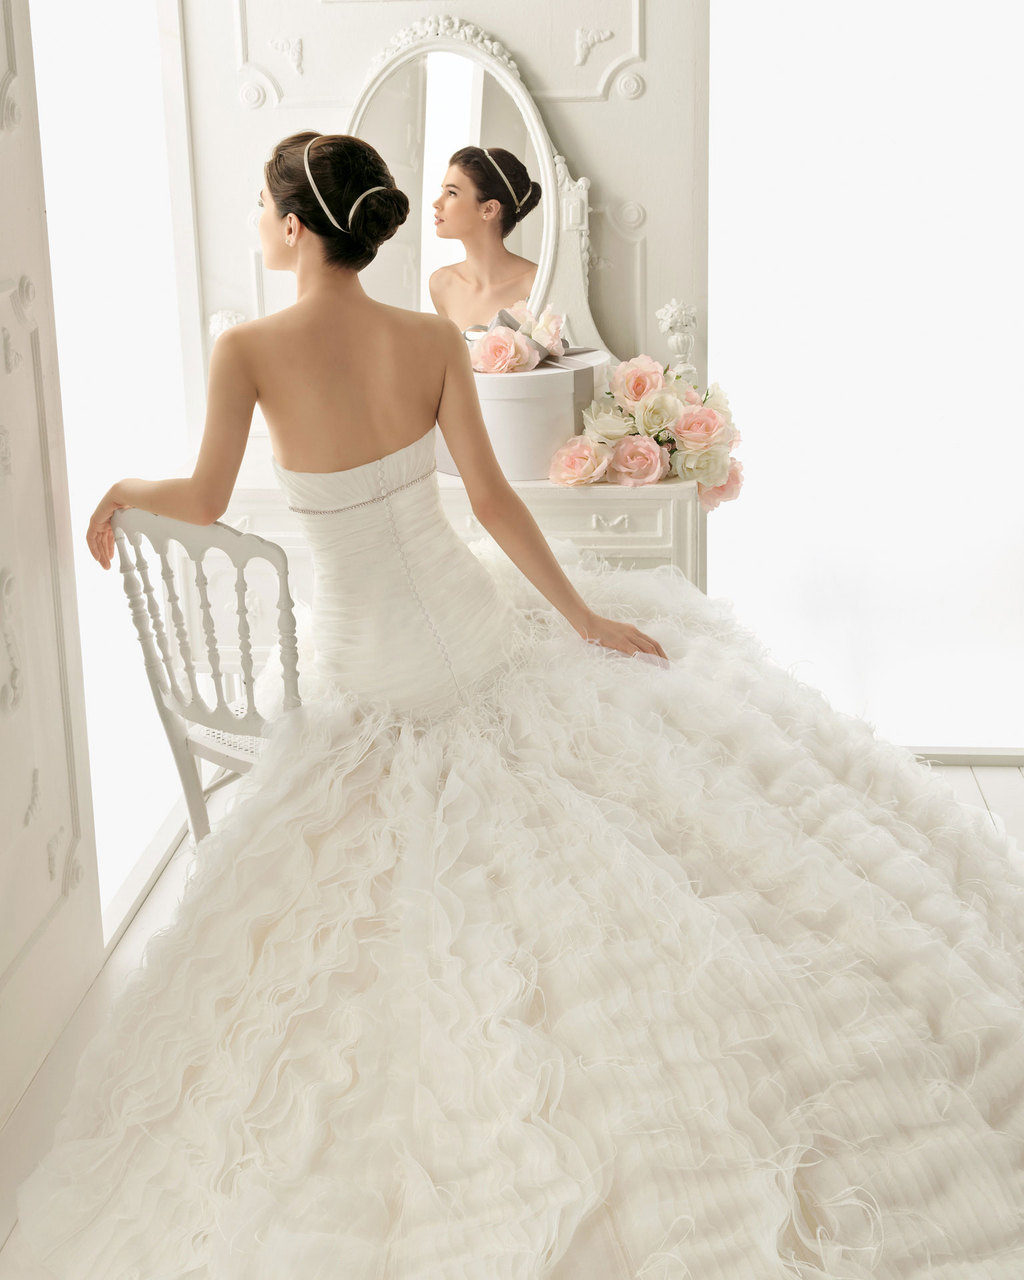 2013 wedding dress Aire Barcelona bridal gowns rusia